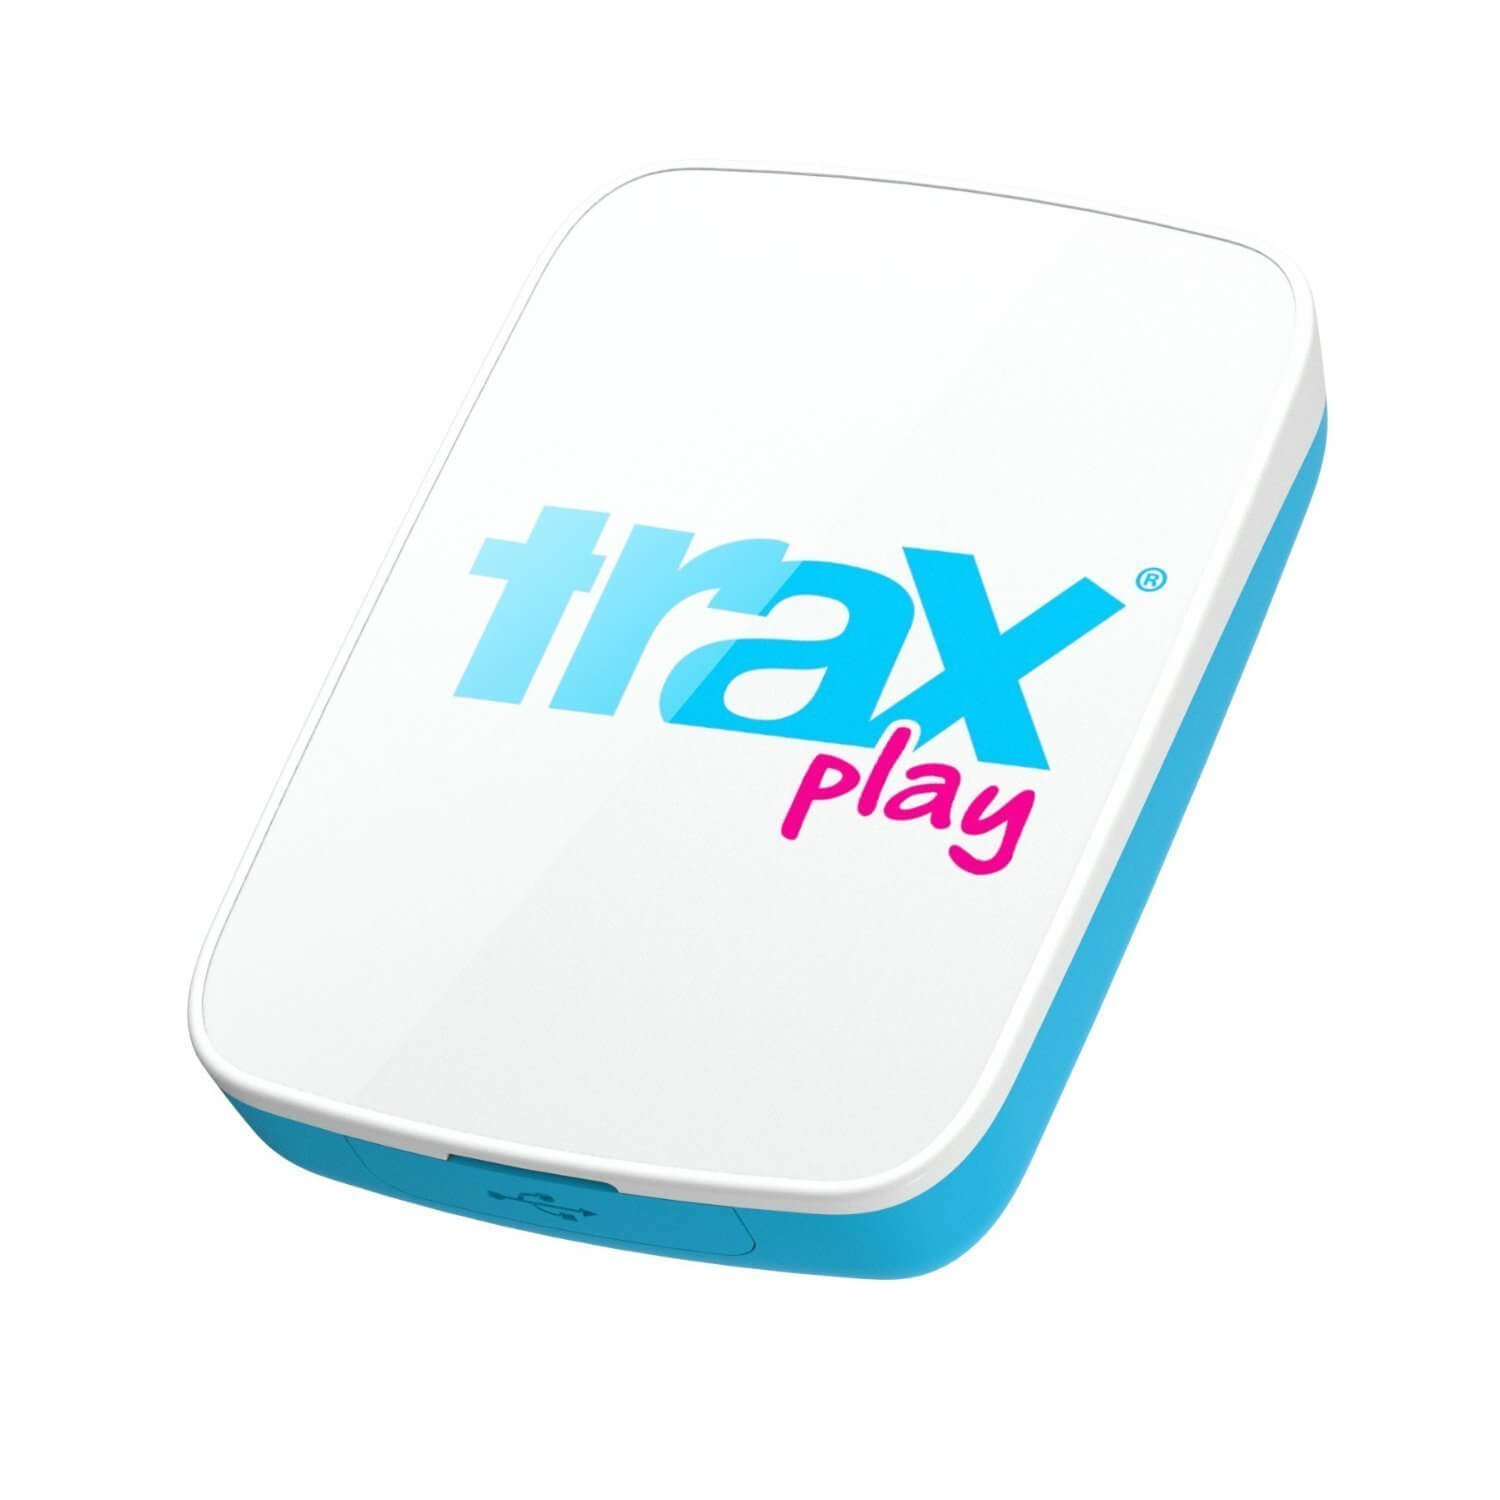 Trax Play Live Outdoor NUEVO Rastreador GPS